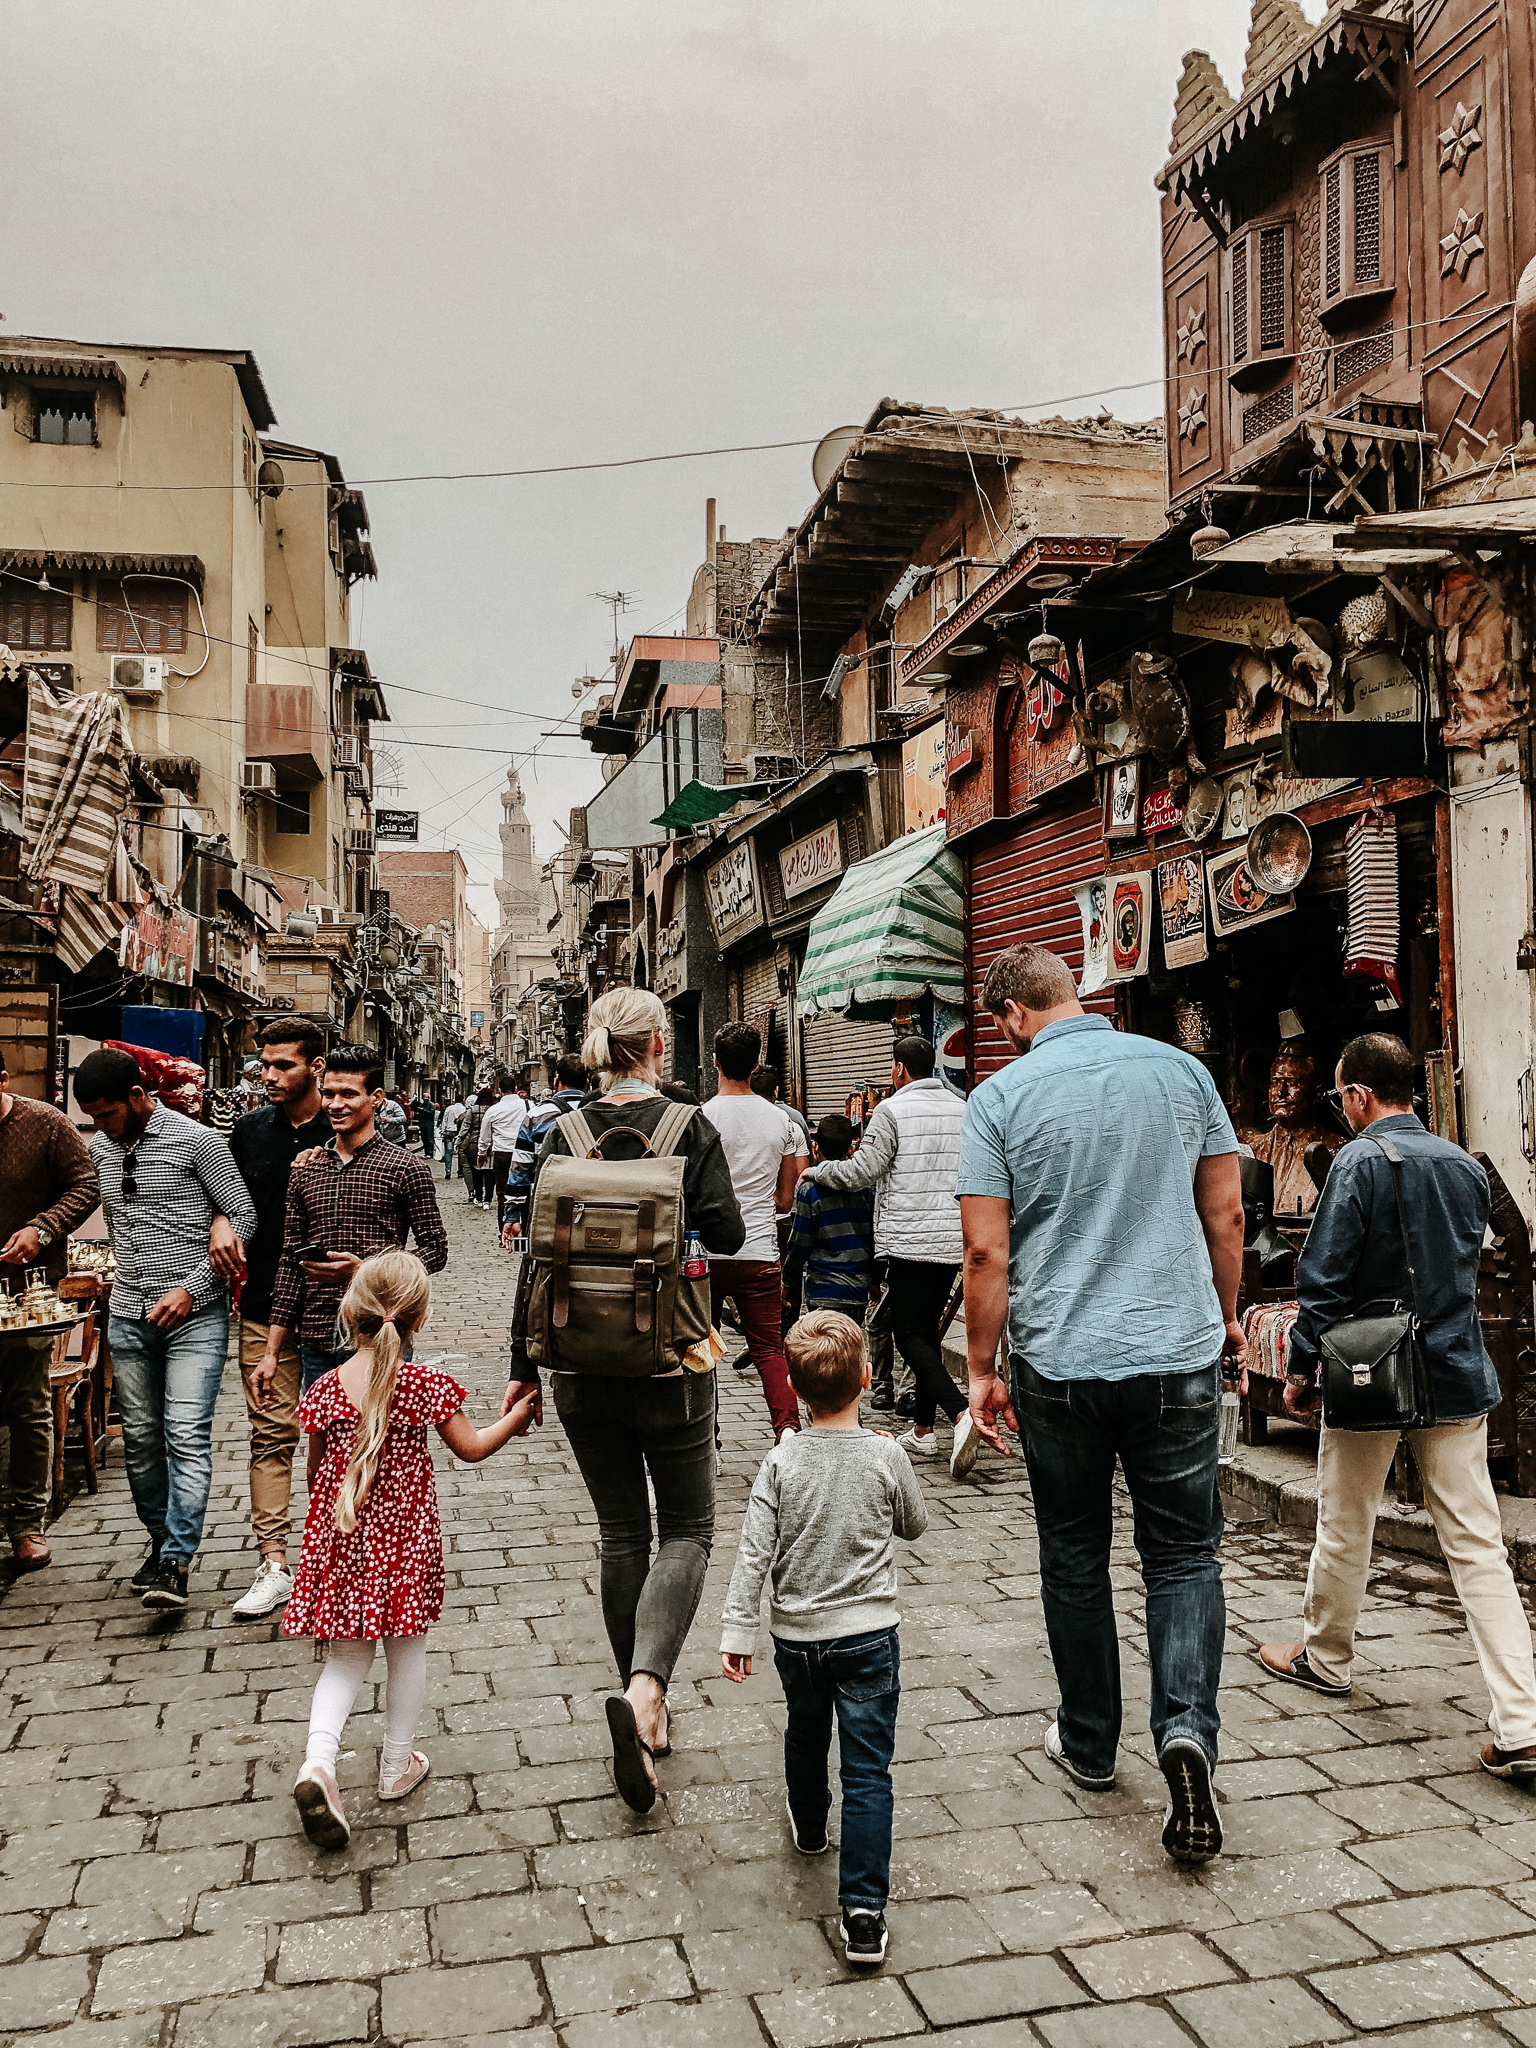 A walk through Old Cairo. (Photo Credit: Hope Livingston)